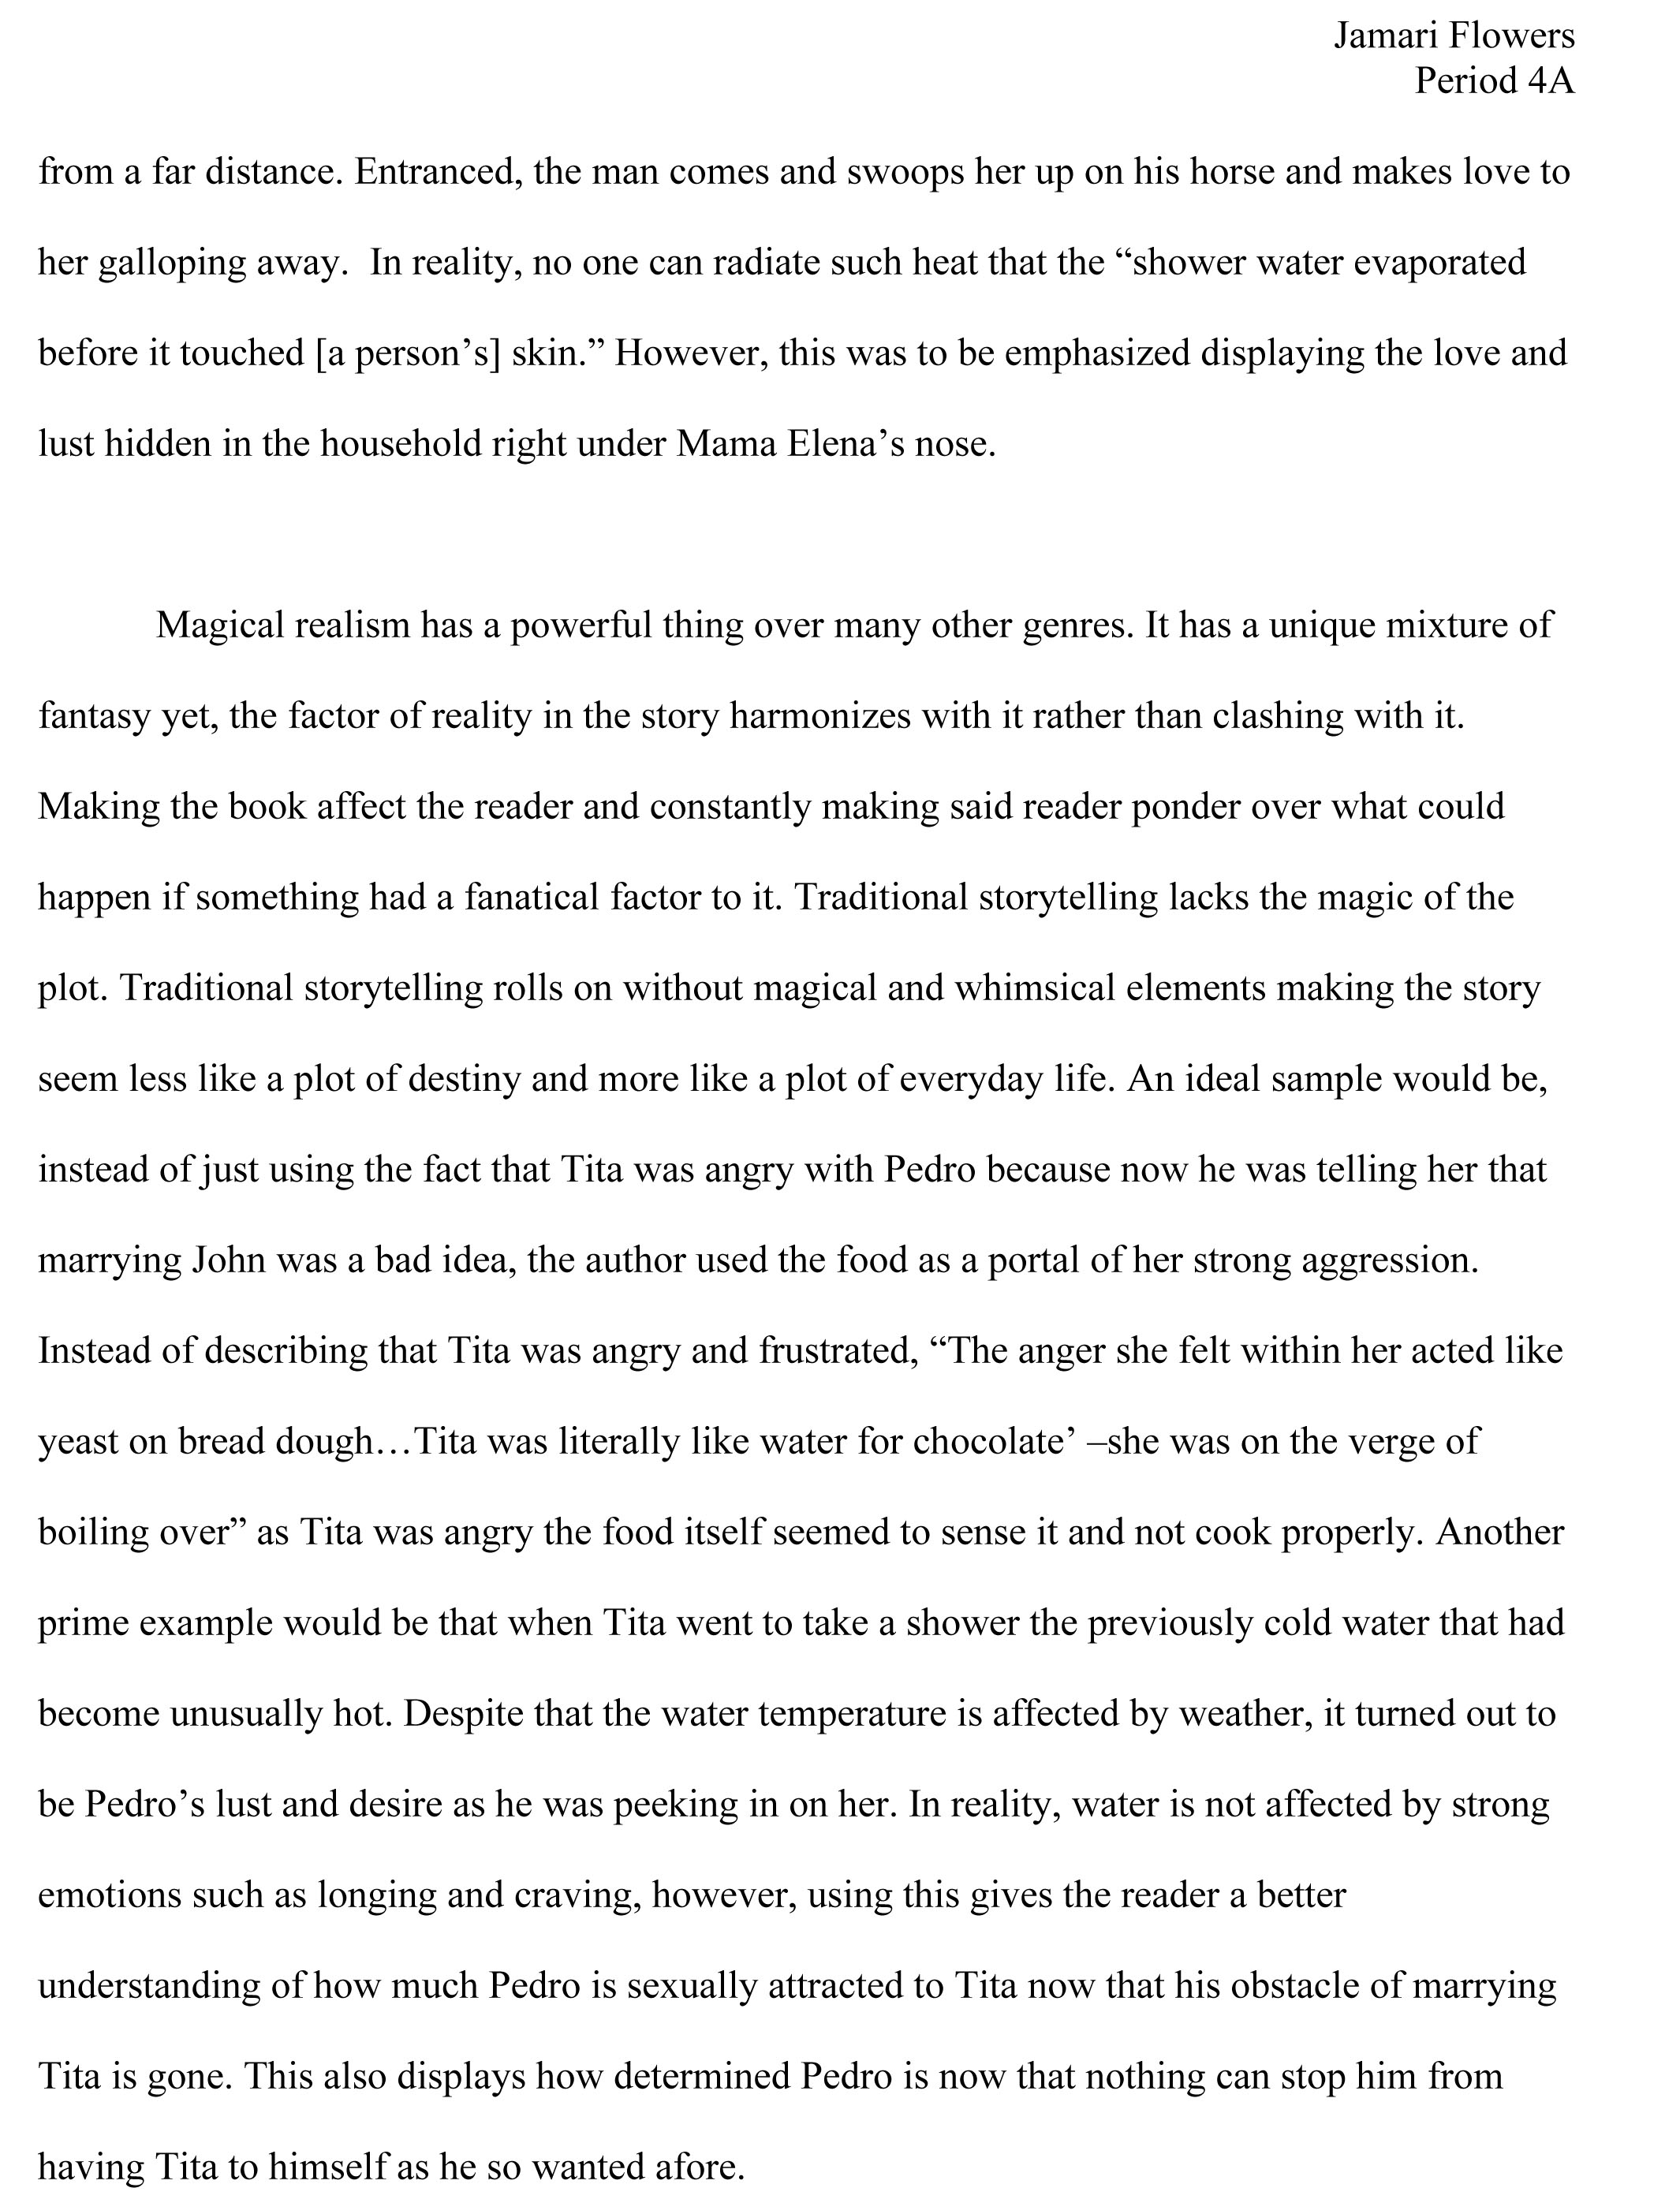 my essays my green life jamari flowers^ ^ magical realism page 2